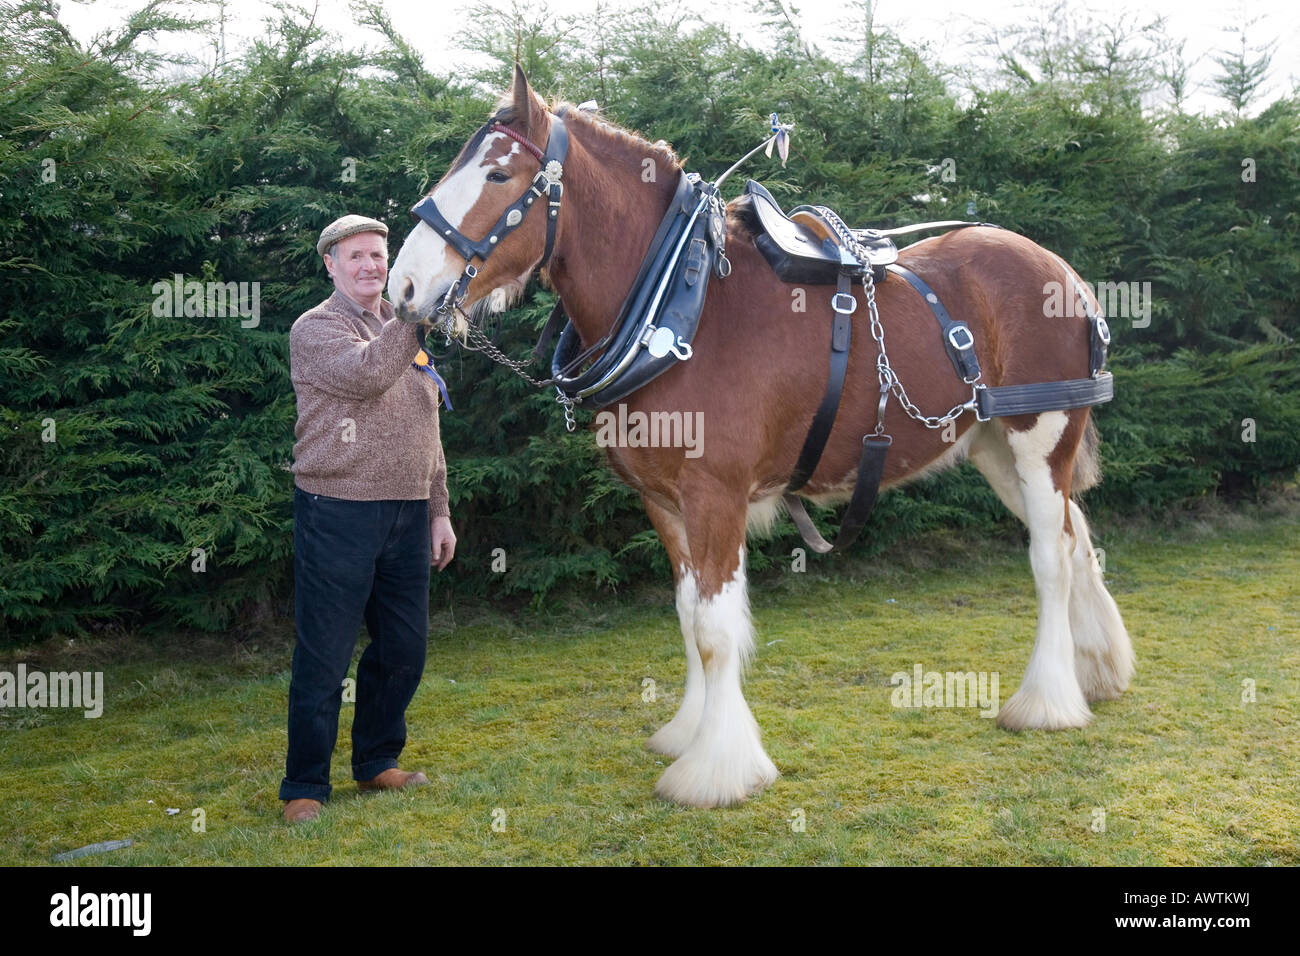 Clydesdale Shire Horse in Harness with Scottish Handler, Scotland, UK - Stock Image